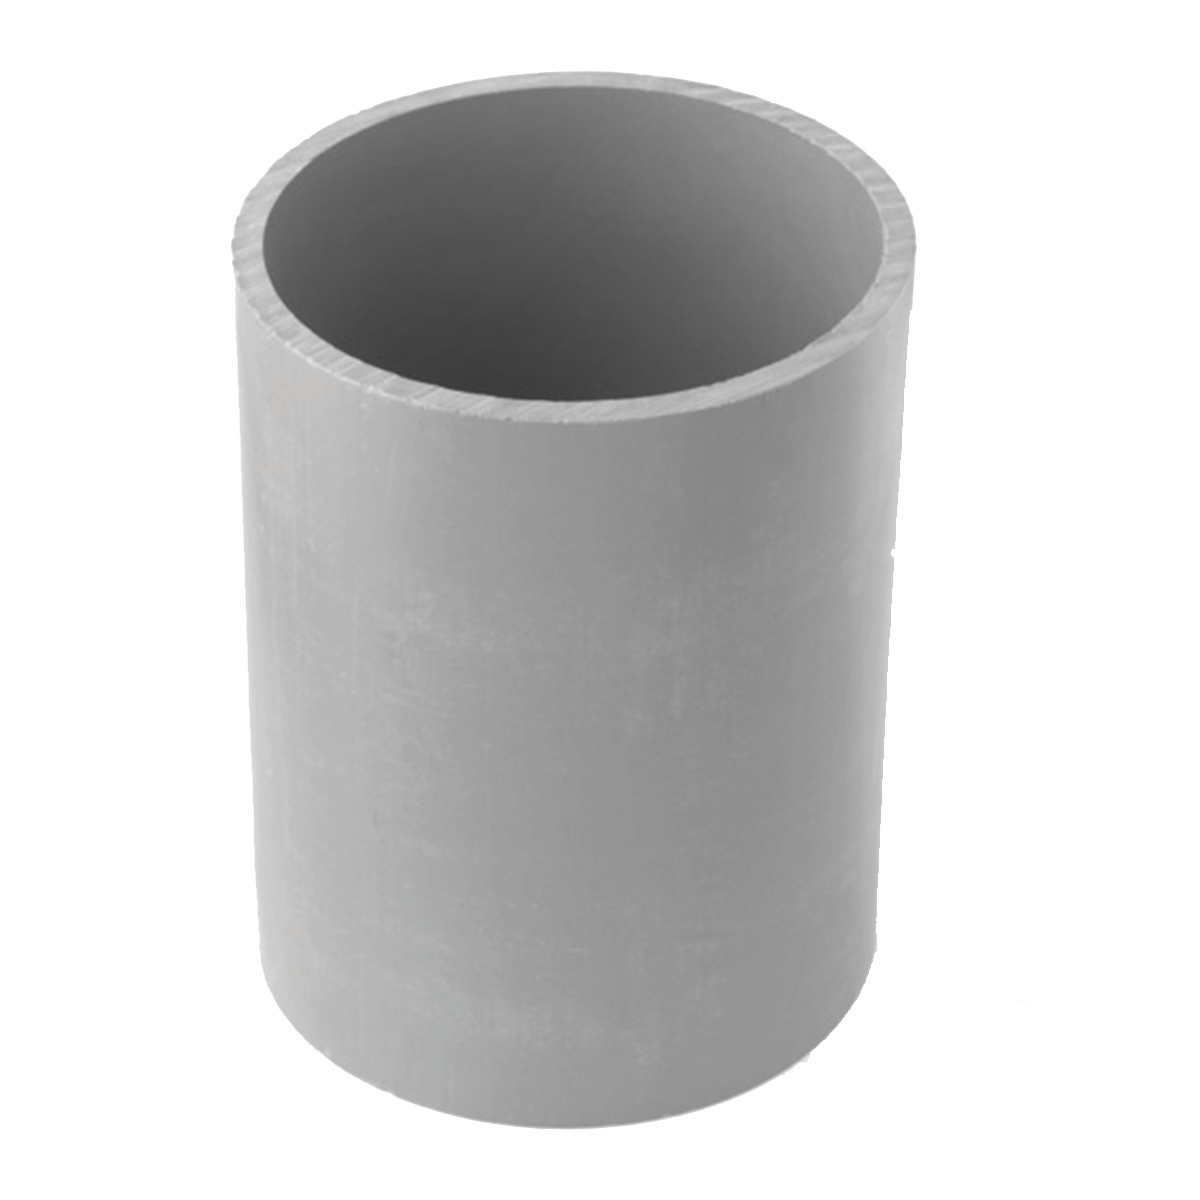 5 INCH PVC REPAIR SLEEVE COUPLING